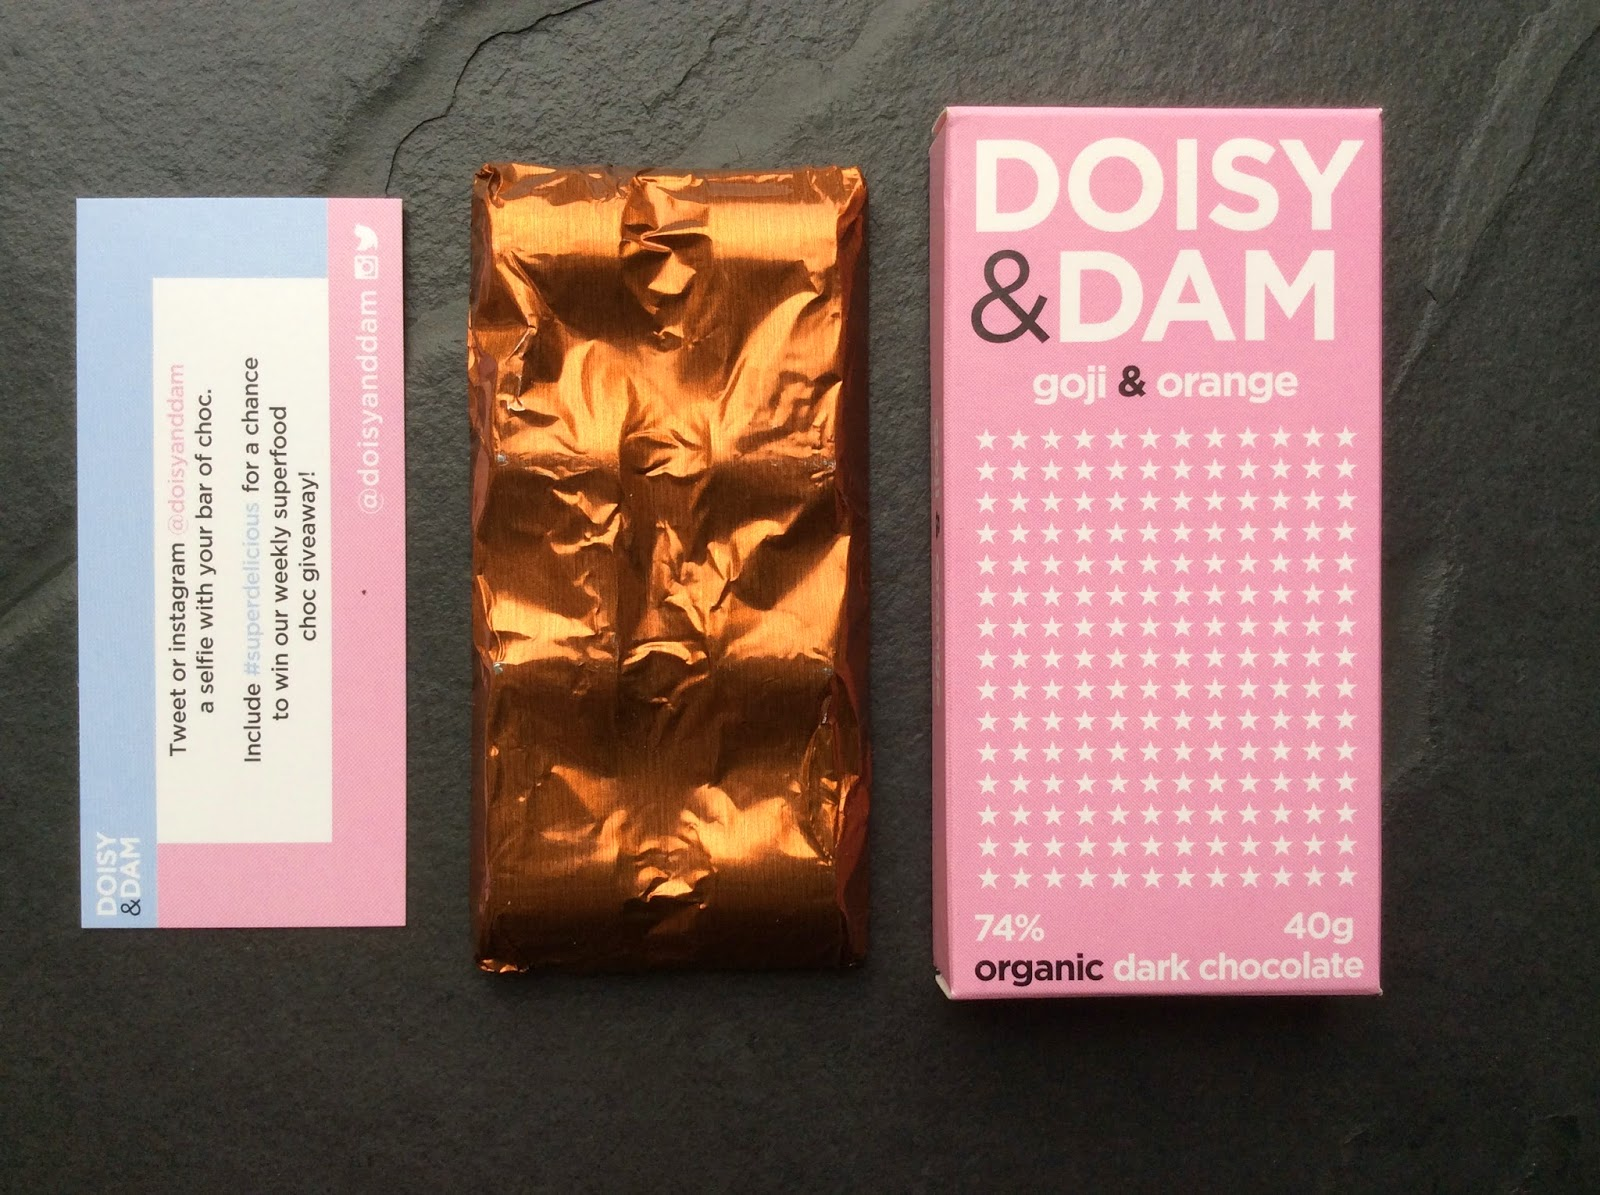 http://chocchick.blogspot.co.uk/2015/05/doisy-dam-goji-orange.html